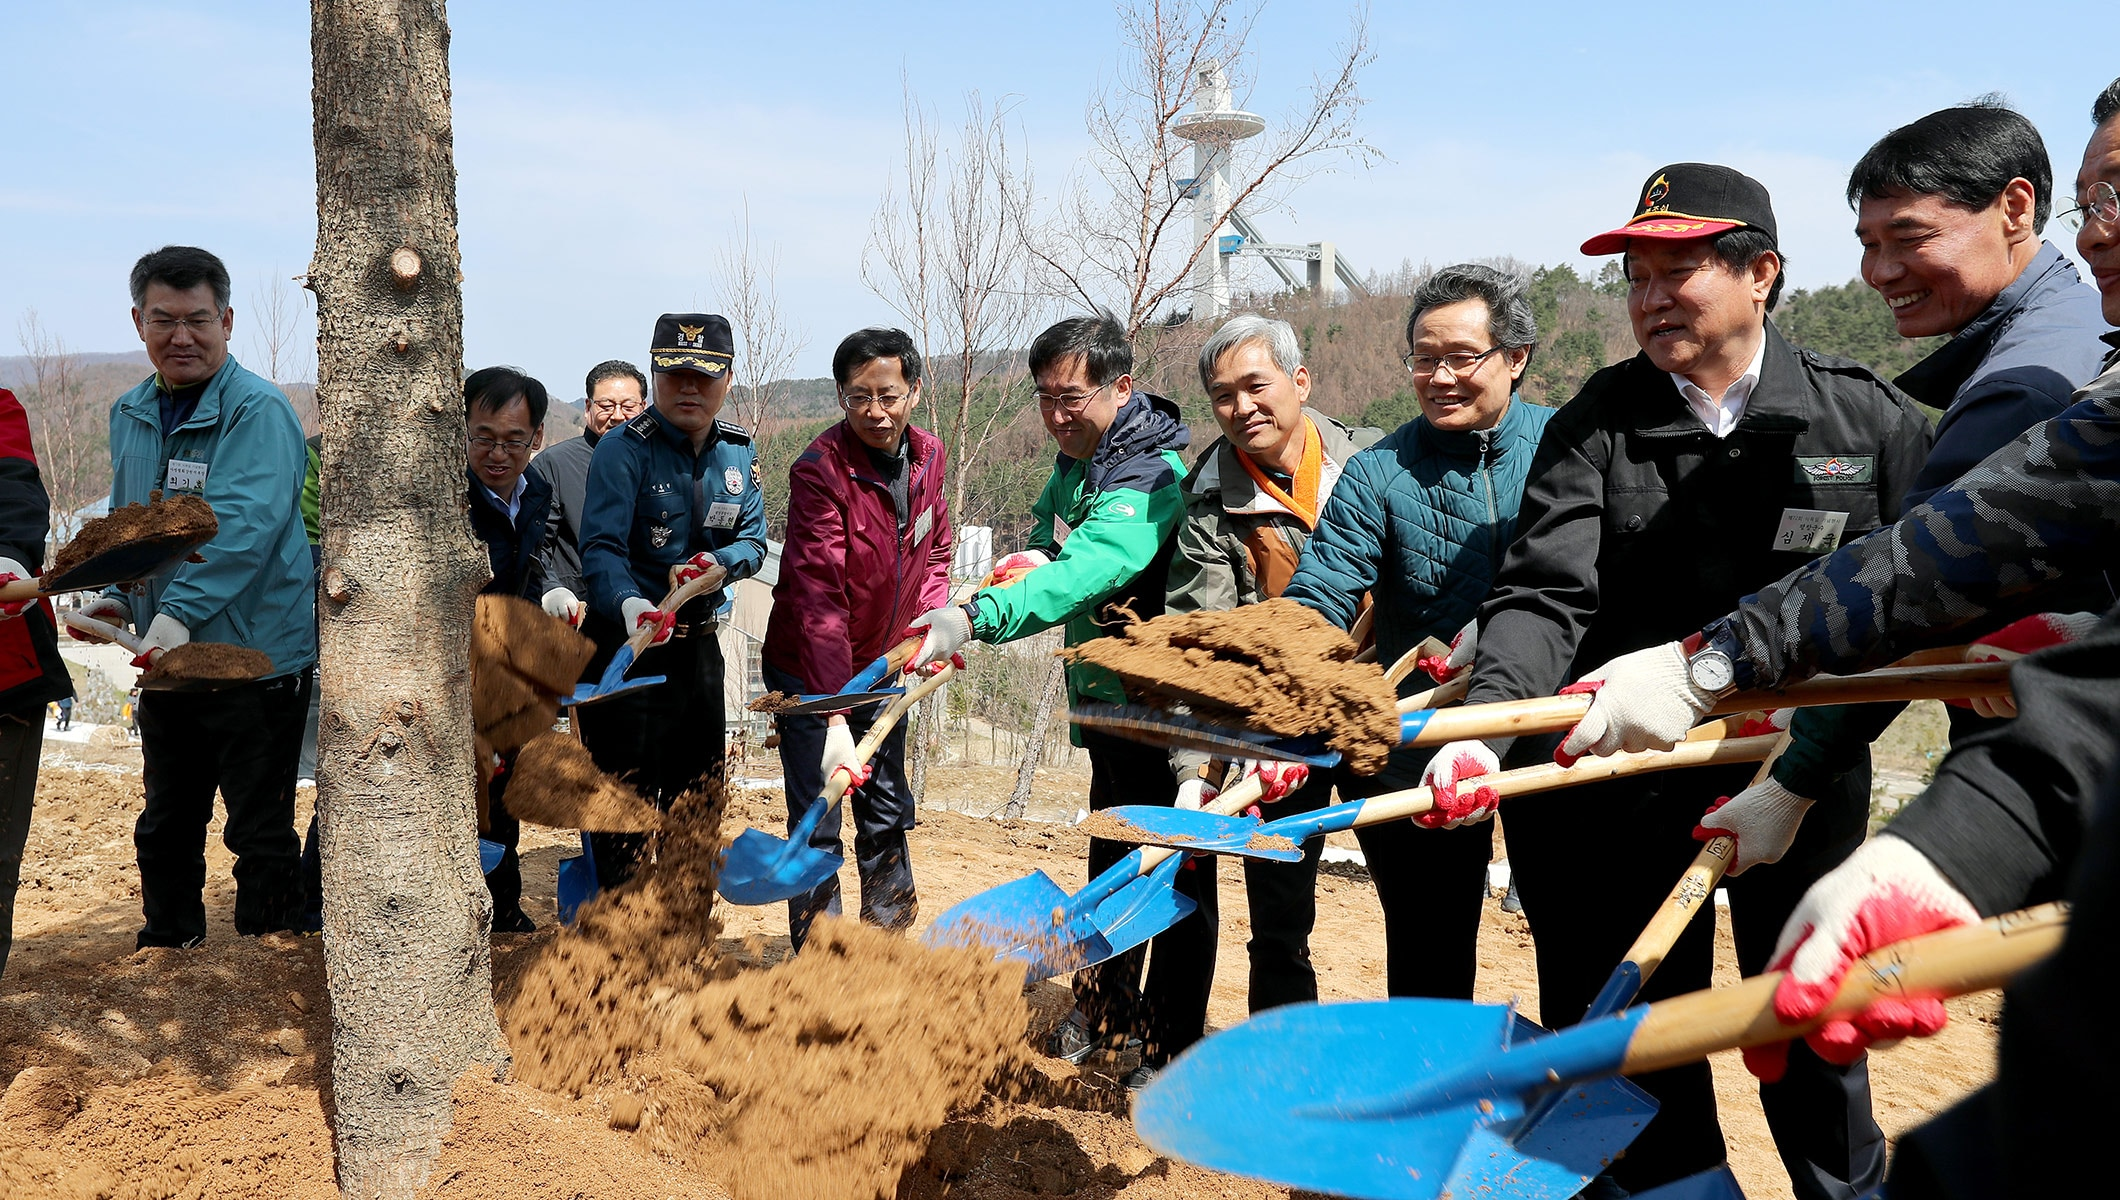 More than 300 people came together on April 7 in PyeongChang to celebrate Arbour Day by planting tree seedlings as part of the PyeongChang 2018 environment and sustainability efforts. The event took place at the Alpensia Sliding Centre, which will host the luge, skeleton and bobsleigh events at next year's Olympic Winter Games.